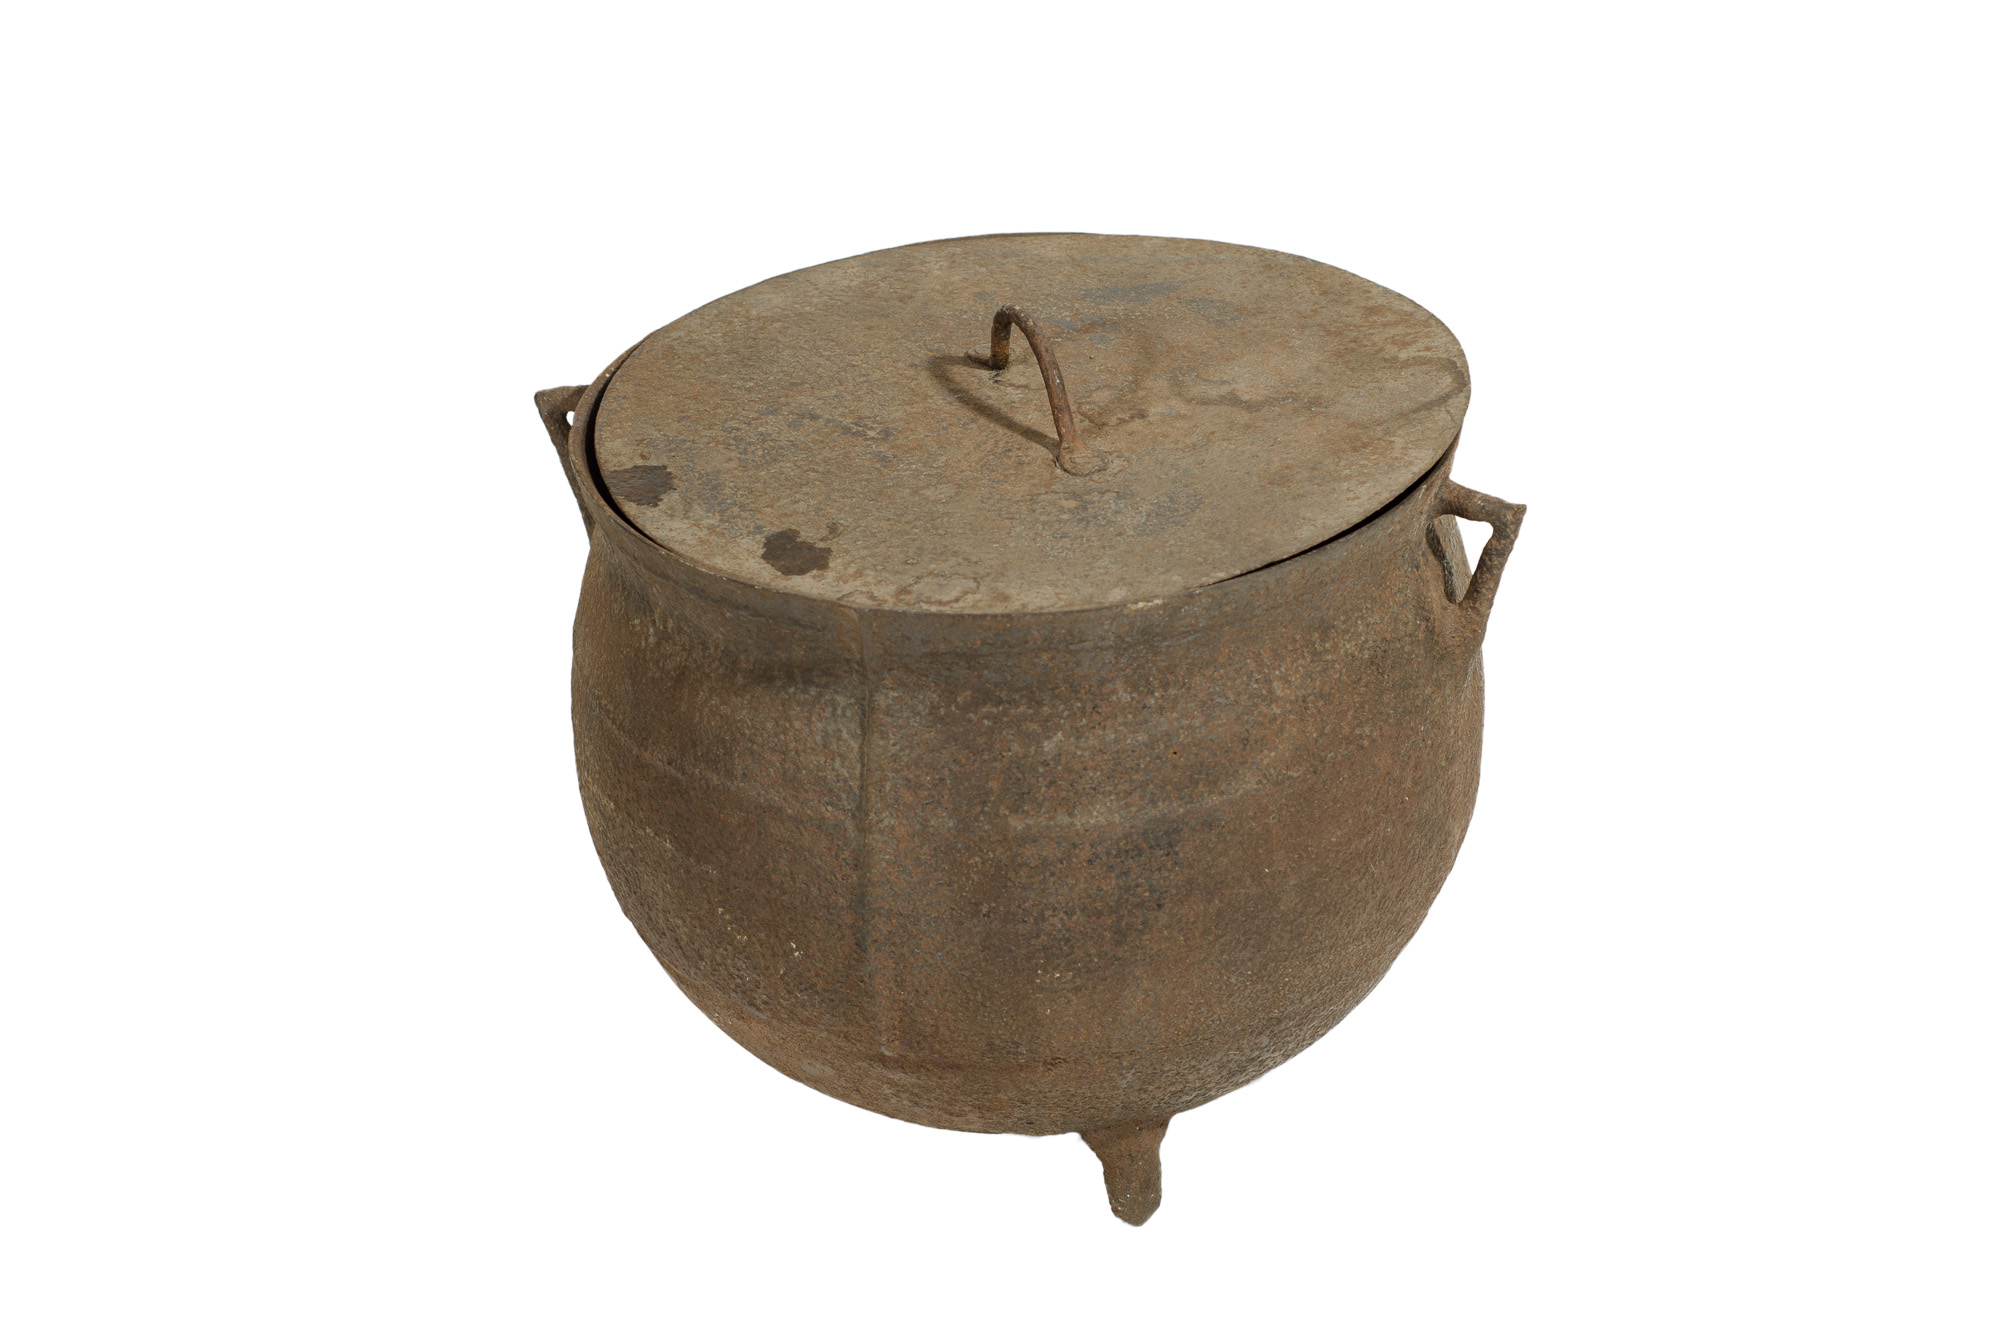 Cast Iron Pot Cast Iron Pot With Lid And Handle